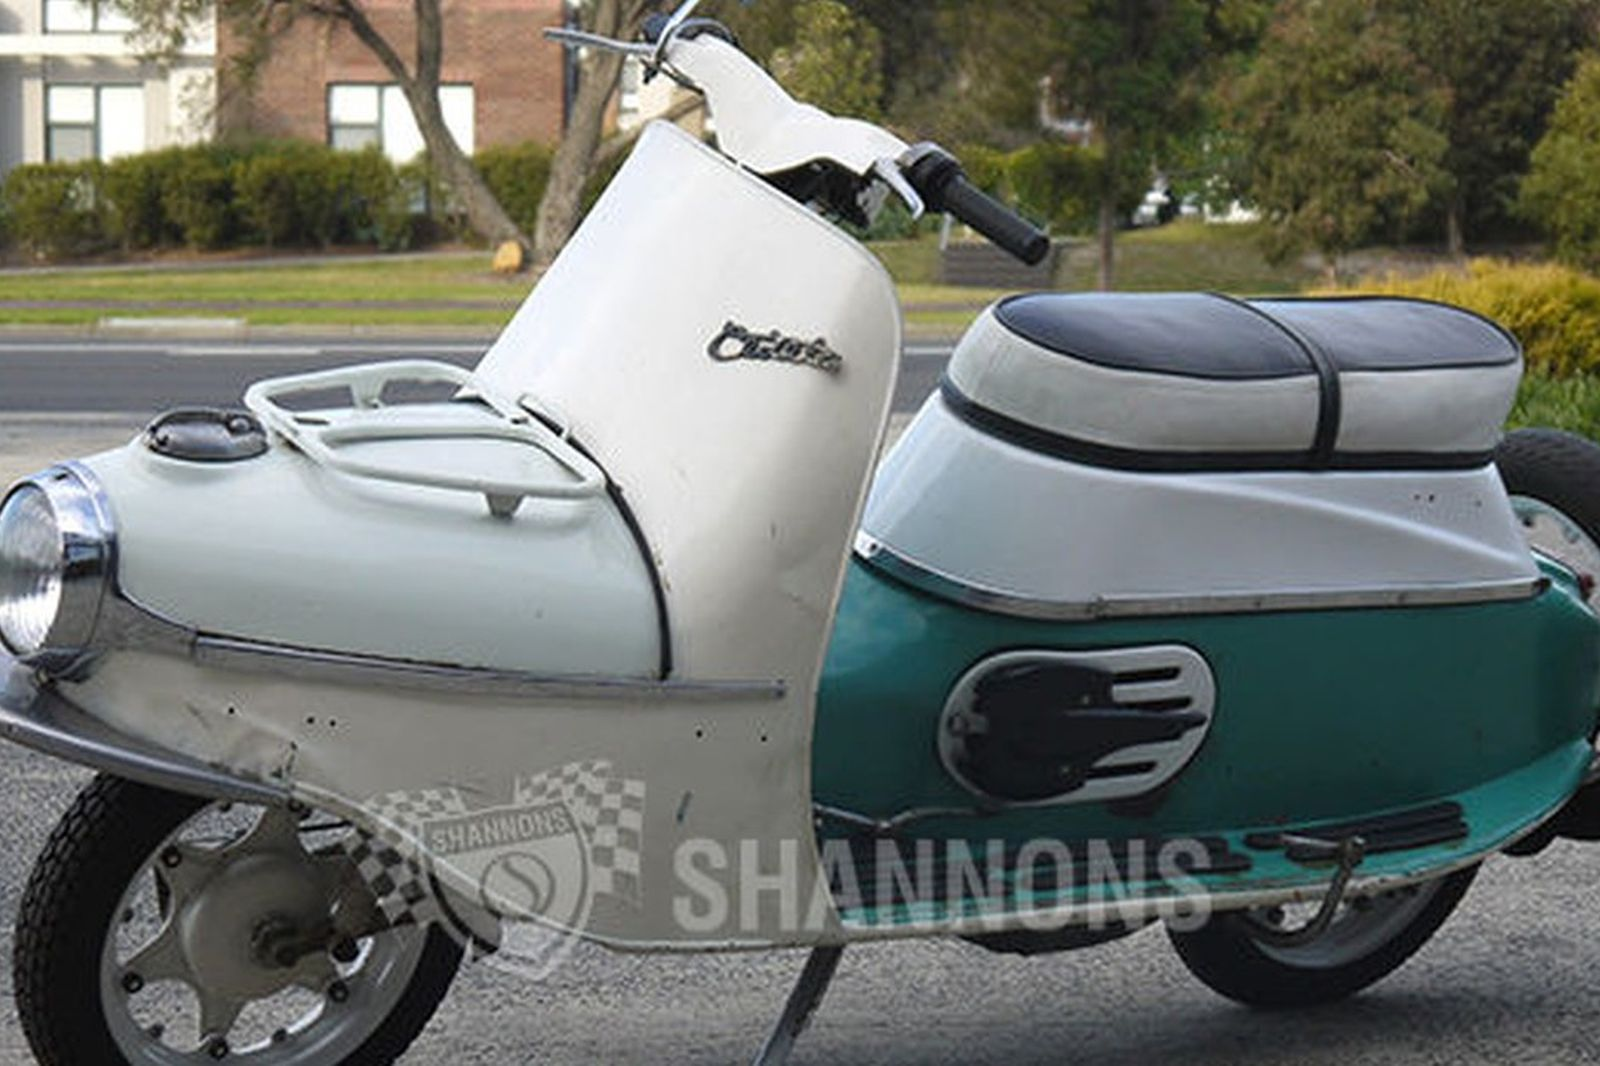 Sold cezeta 172cc type 502 motorscooter auctions lot 6 for Motor vehicle open on saturday